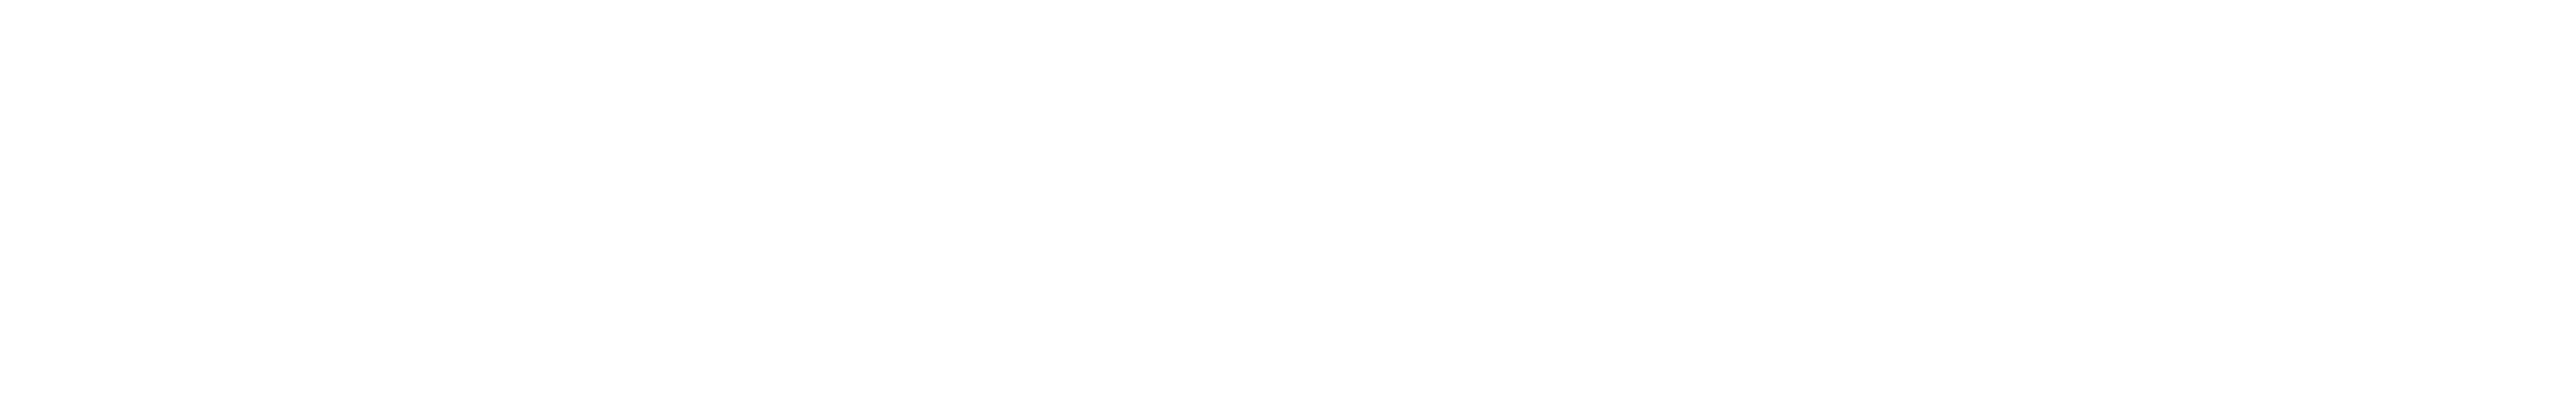 Restaurants.mu - Mauritius No.1 Restaurants Guide